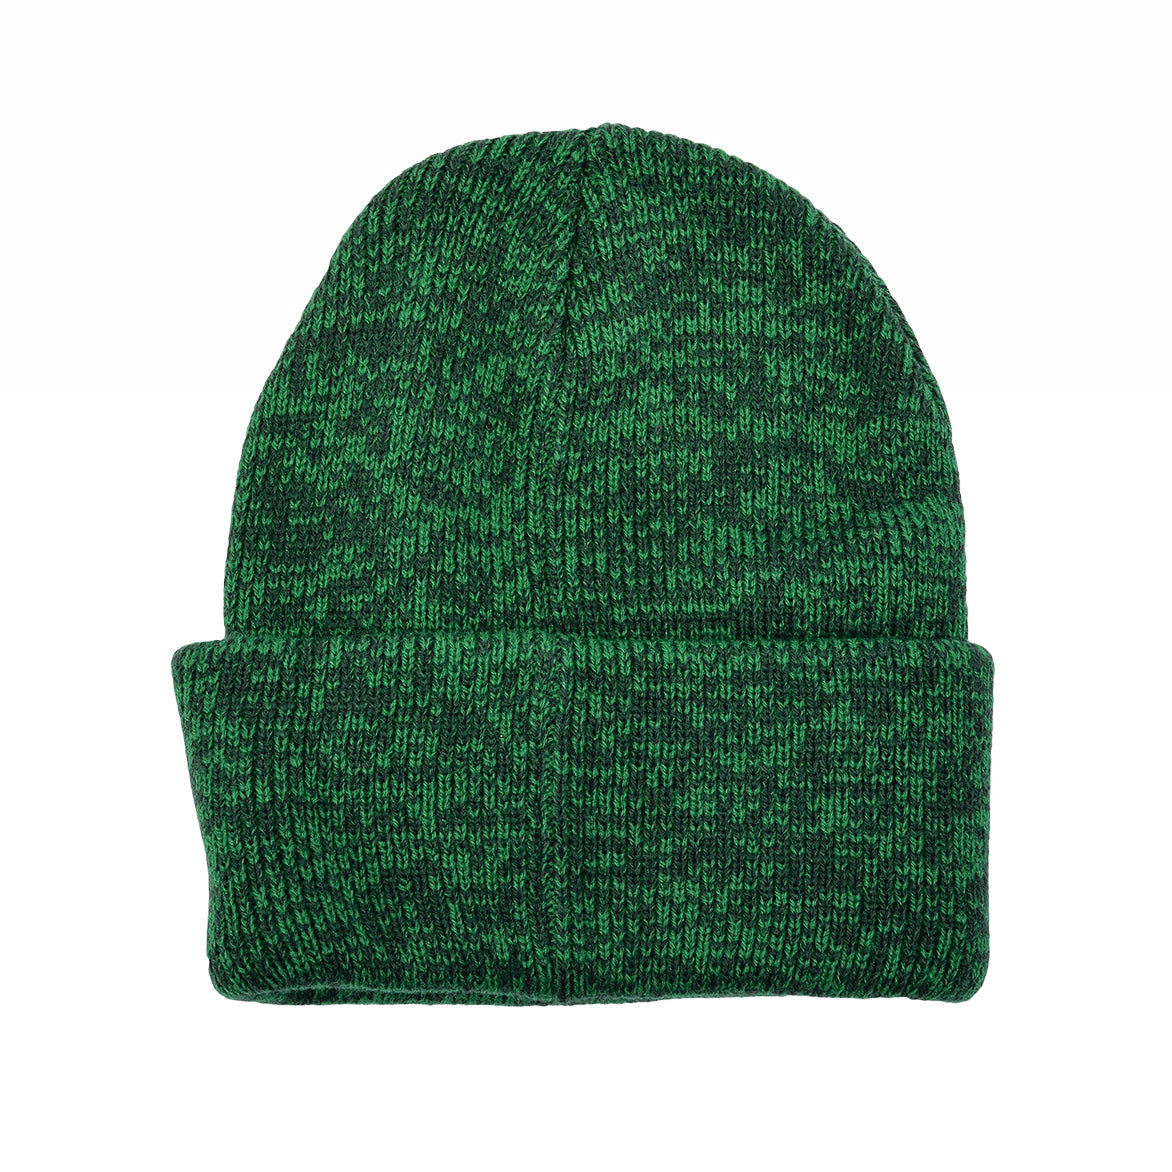 EAGLES BRAIN FREEZE CUFF KNIT - KELLY GREEN